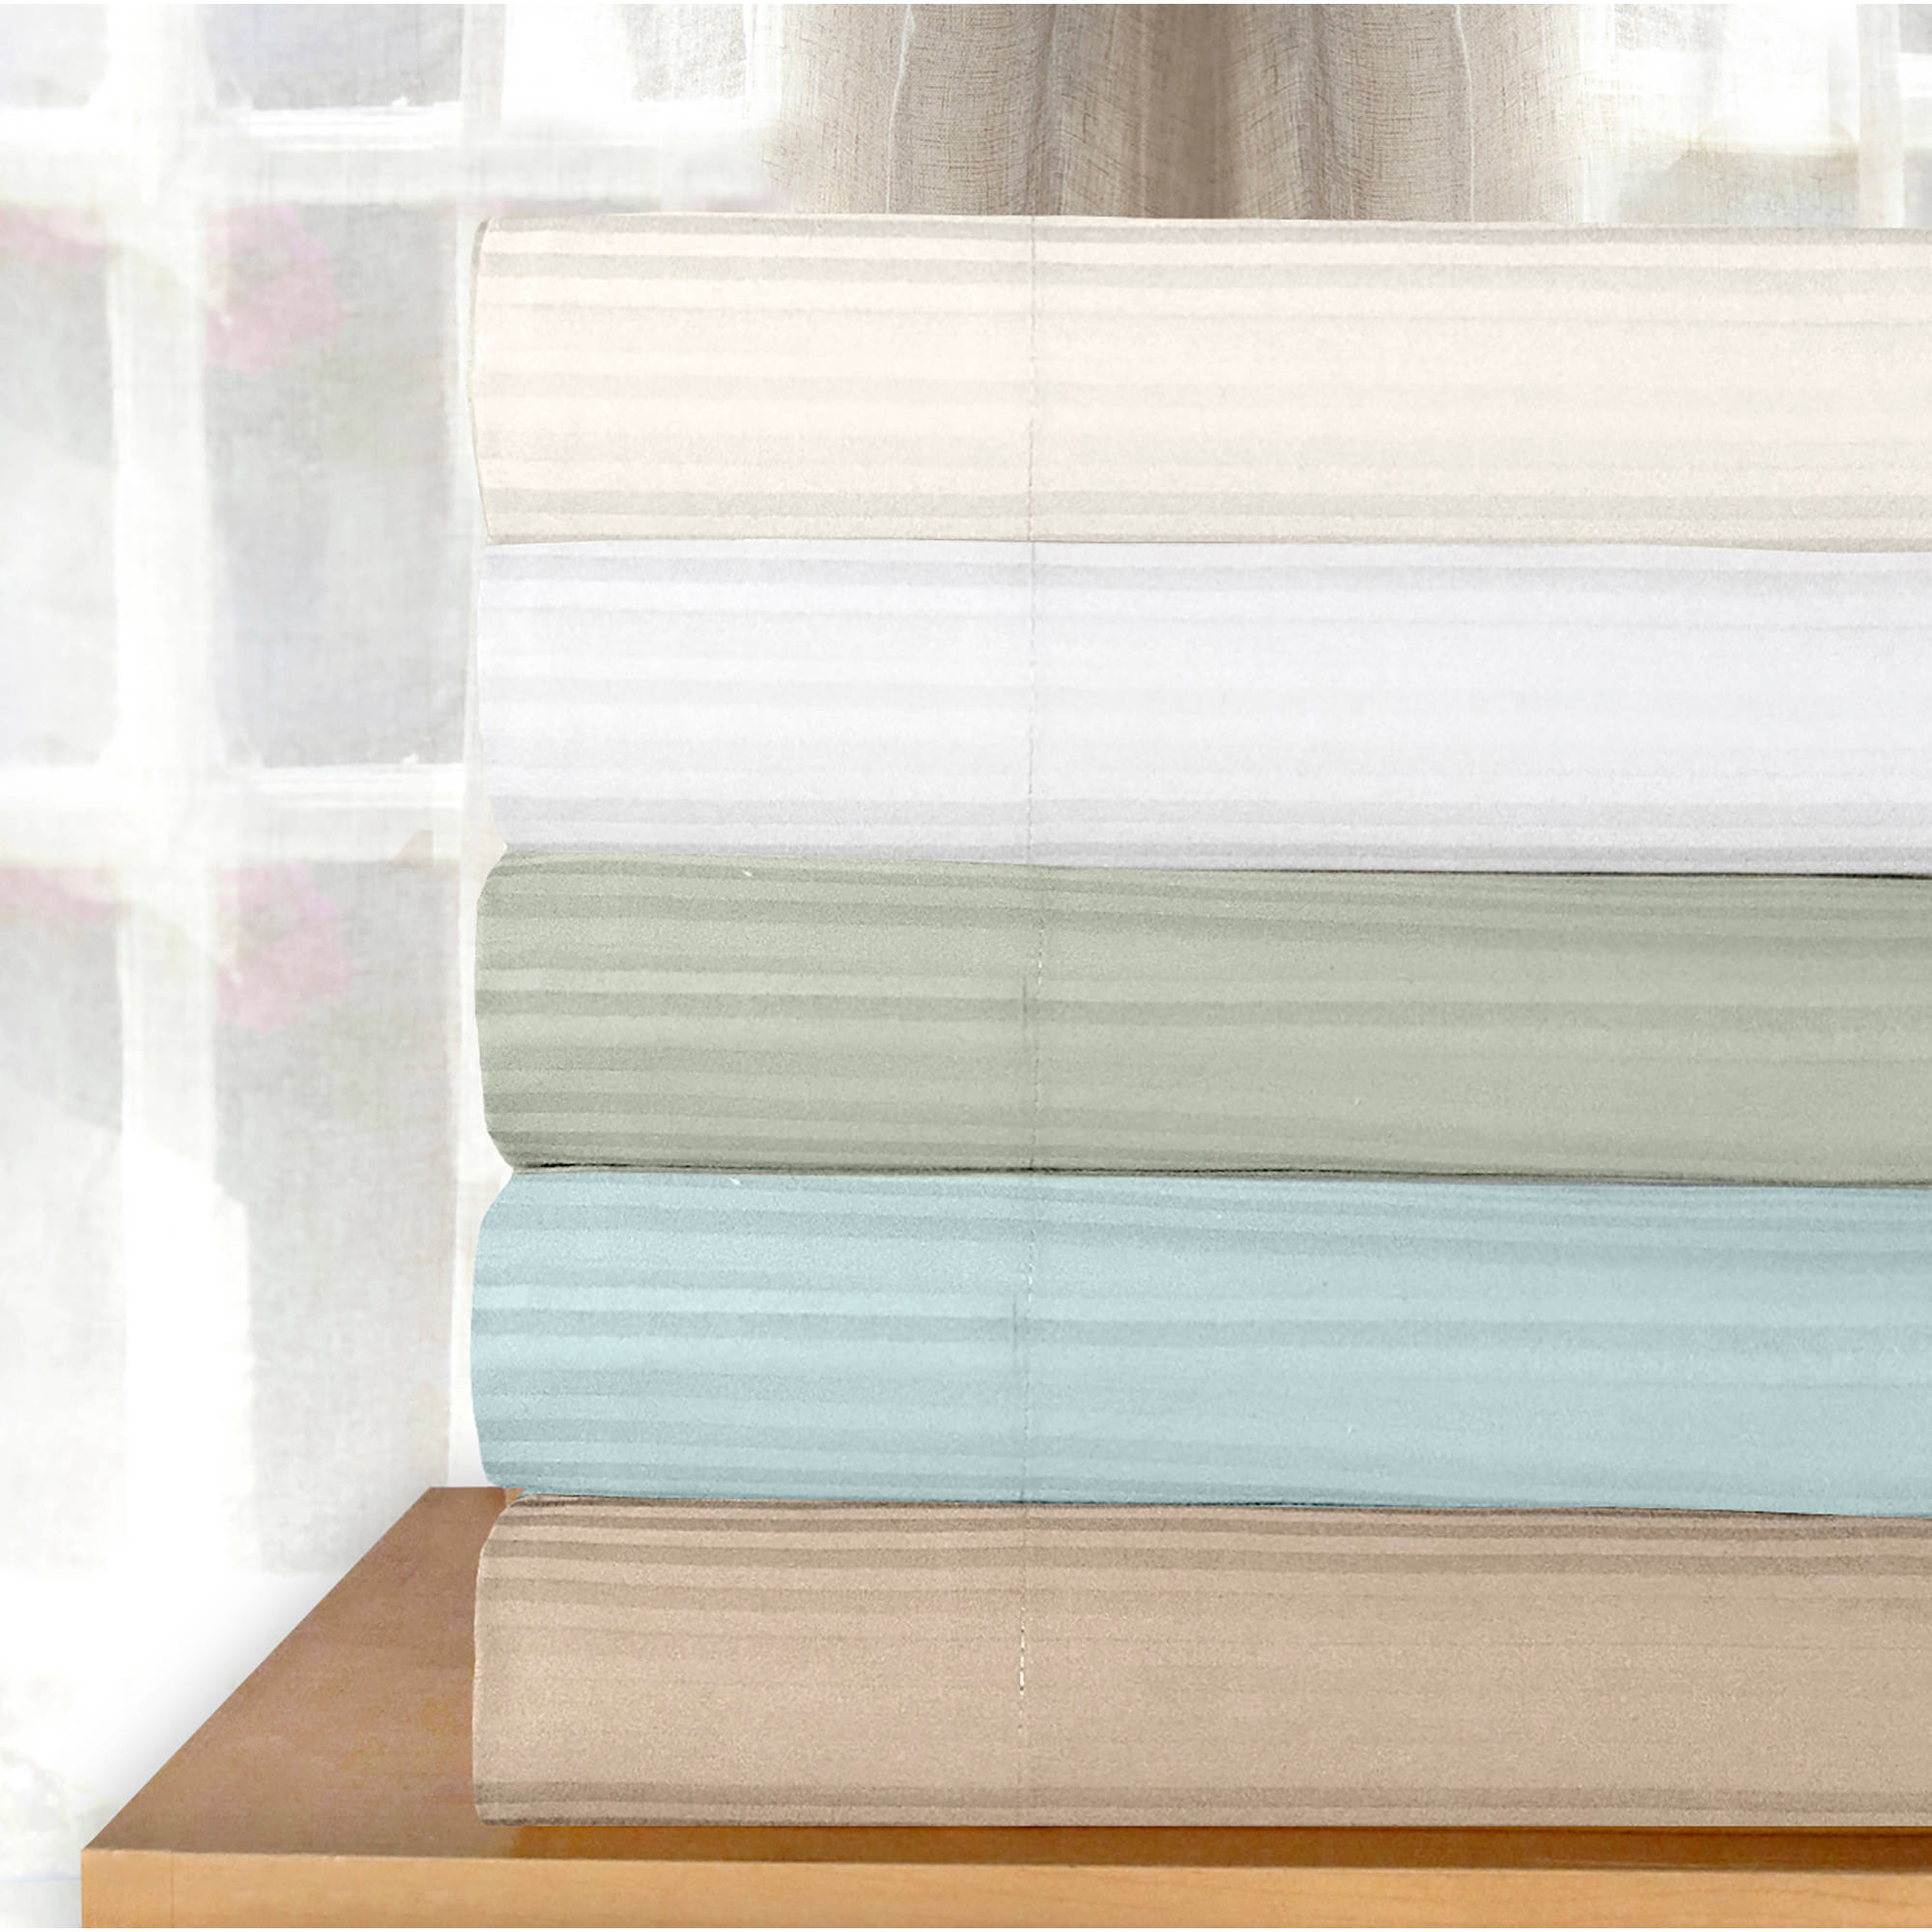 Veratex Medici Dobby Stripe Sheet Set